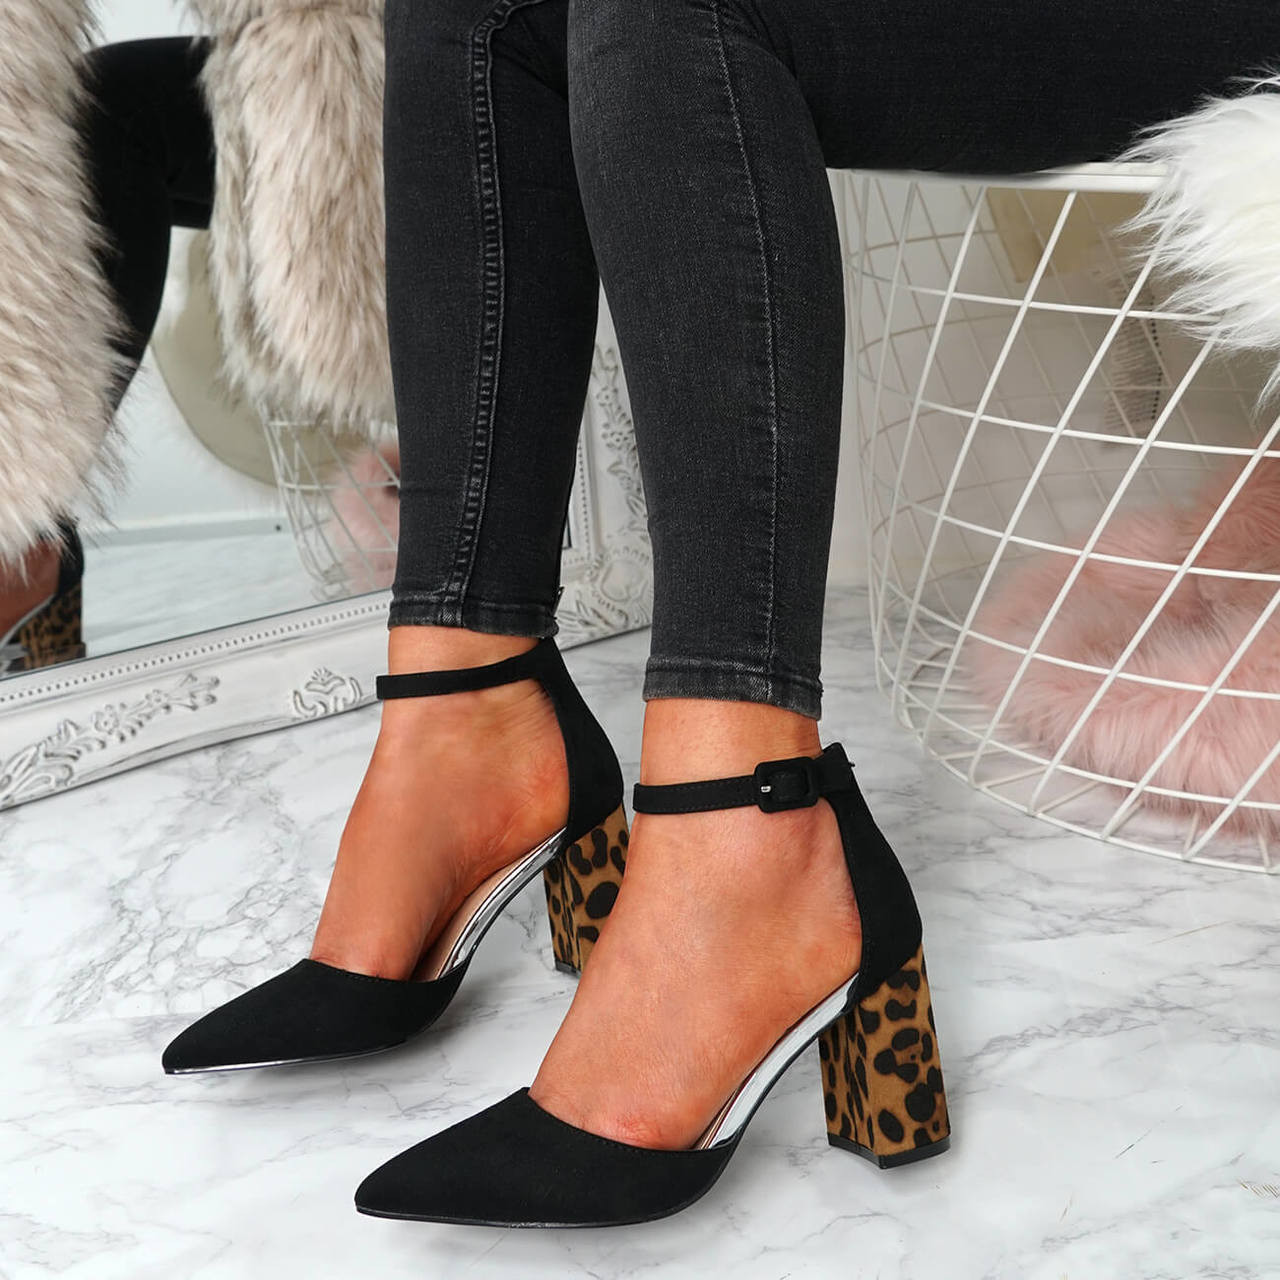 1be4b3c03 Womens Ladies Ankle Strap Block Heel Leopard Pumps Pointed Toe Shoes Size Uk